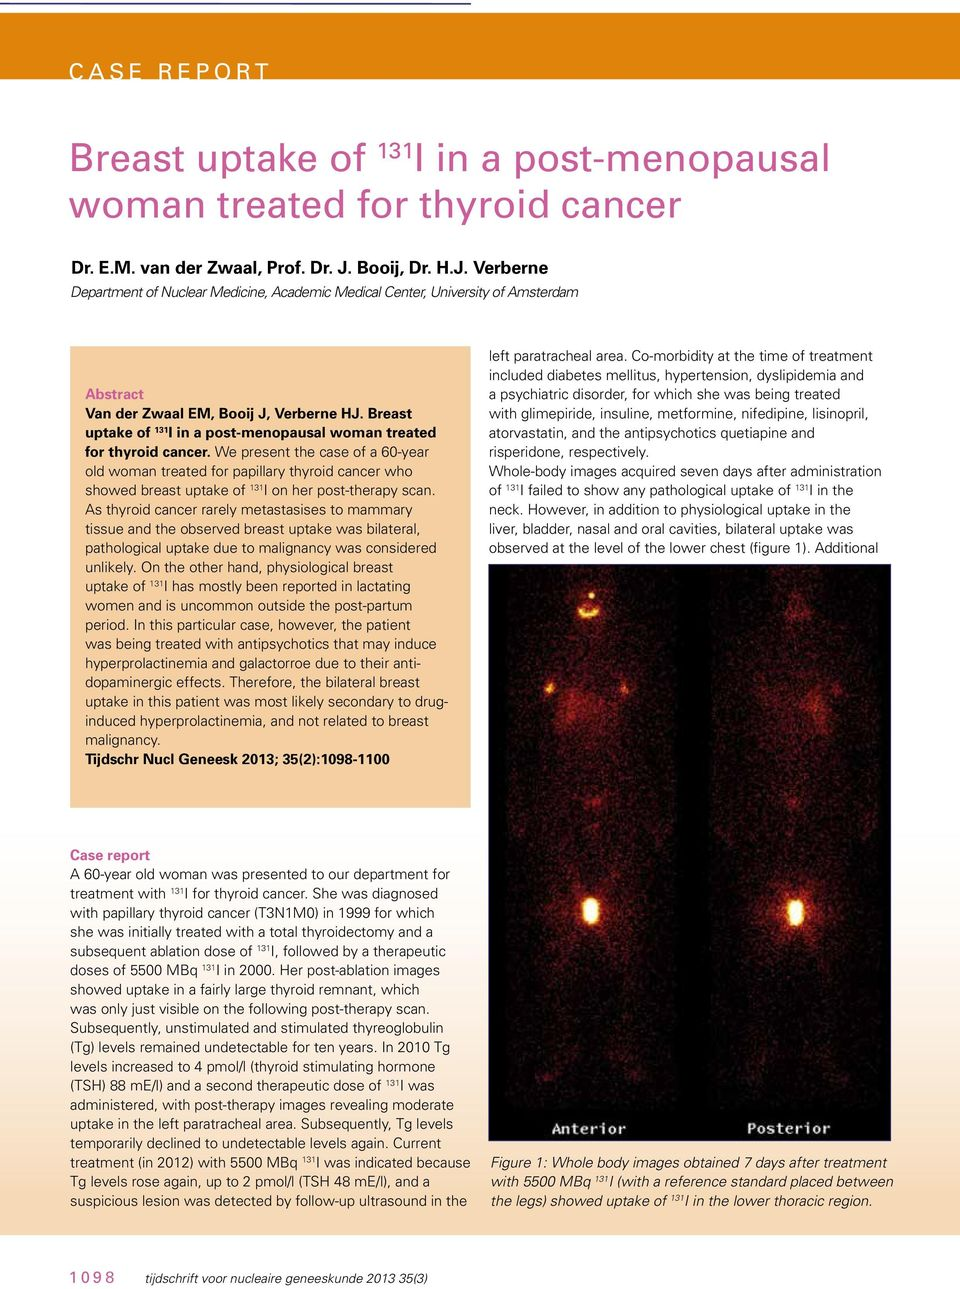 Breast uptake of 131 I in a post-menopausal woman treated for thyroid cancer.